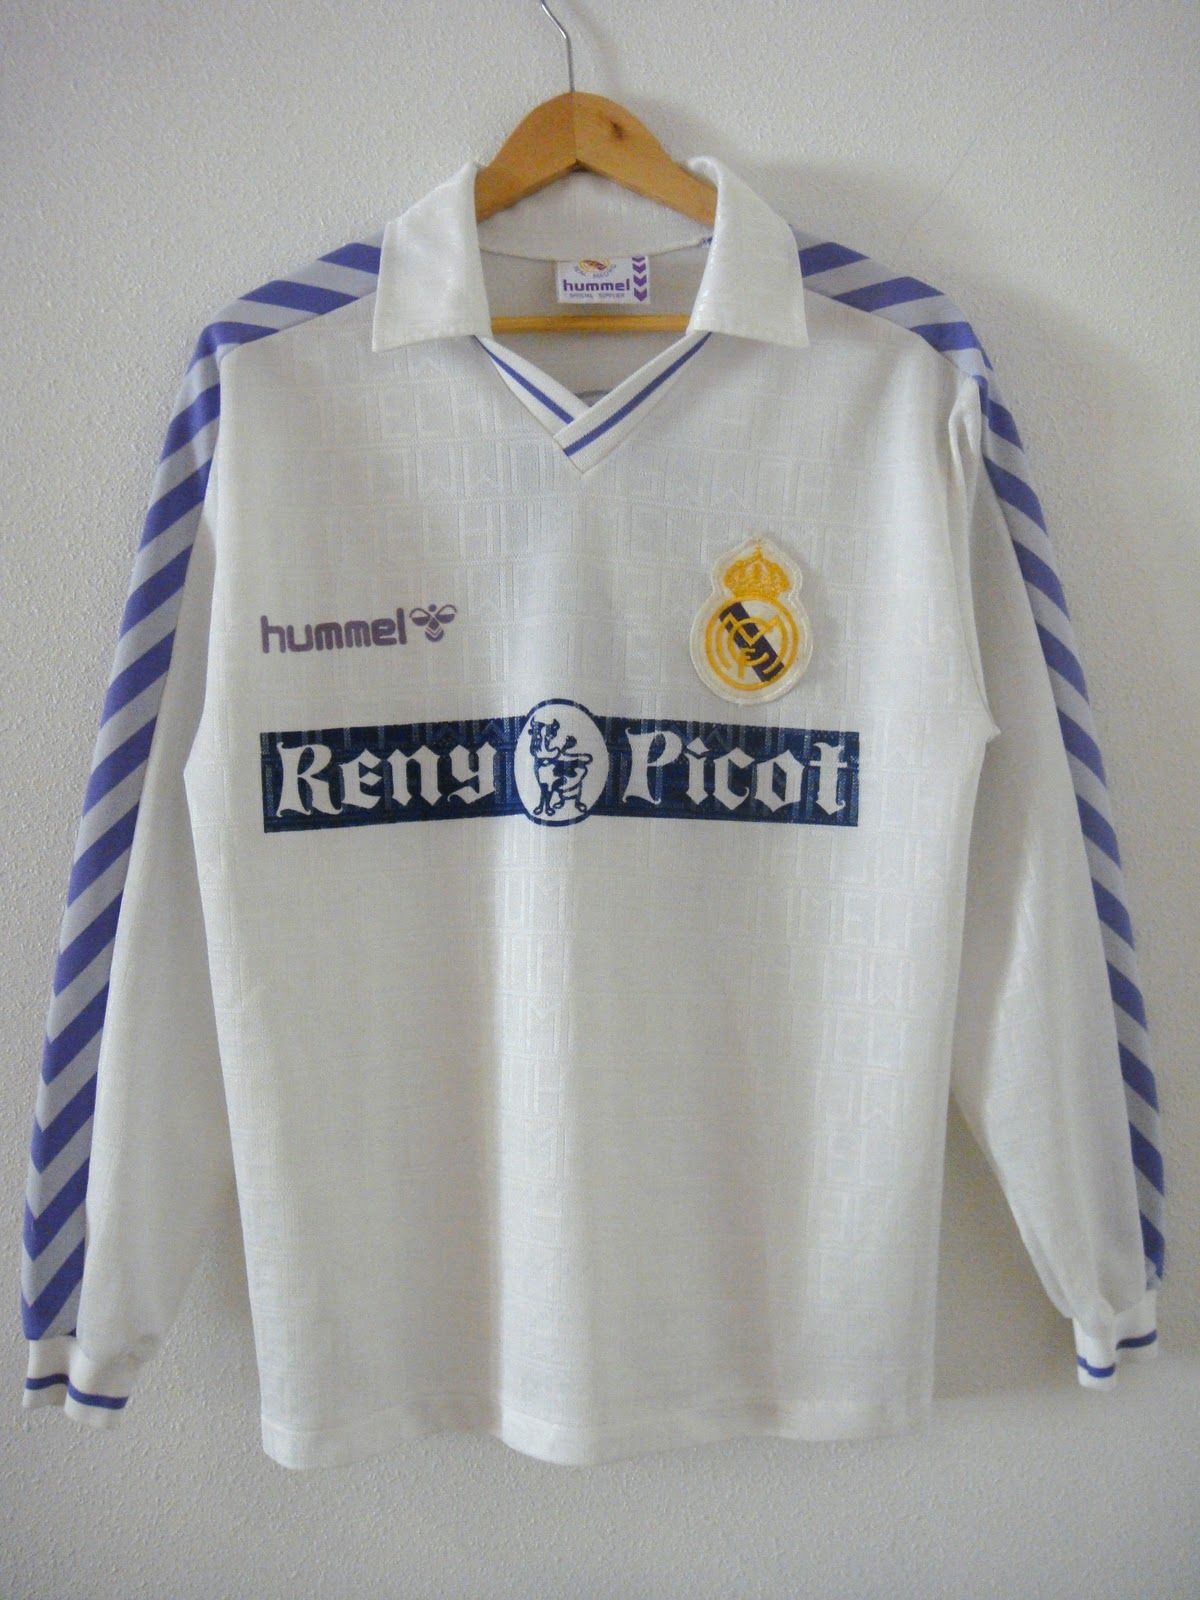 42e99173c Real Madrid 89-90 shirt